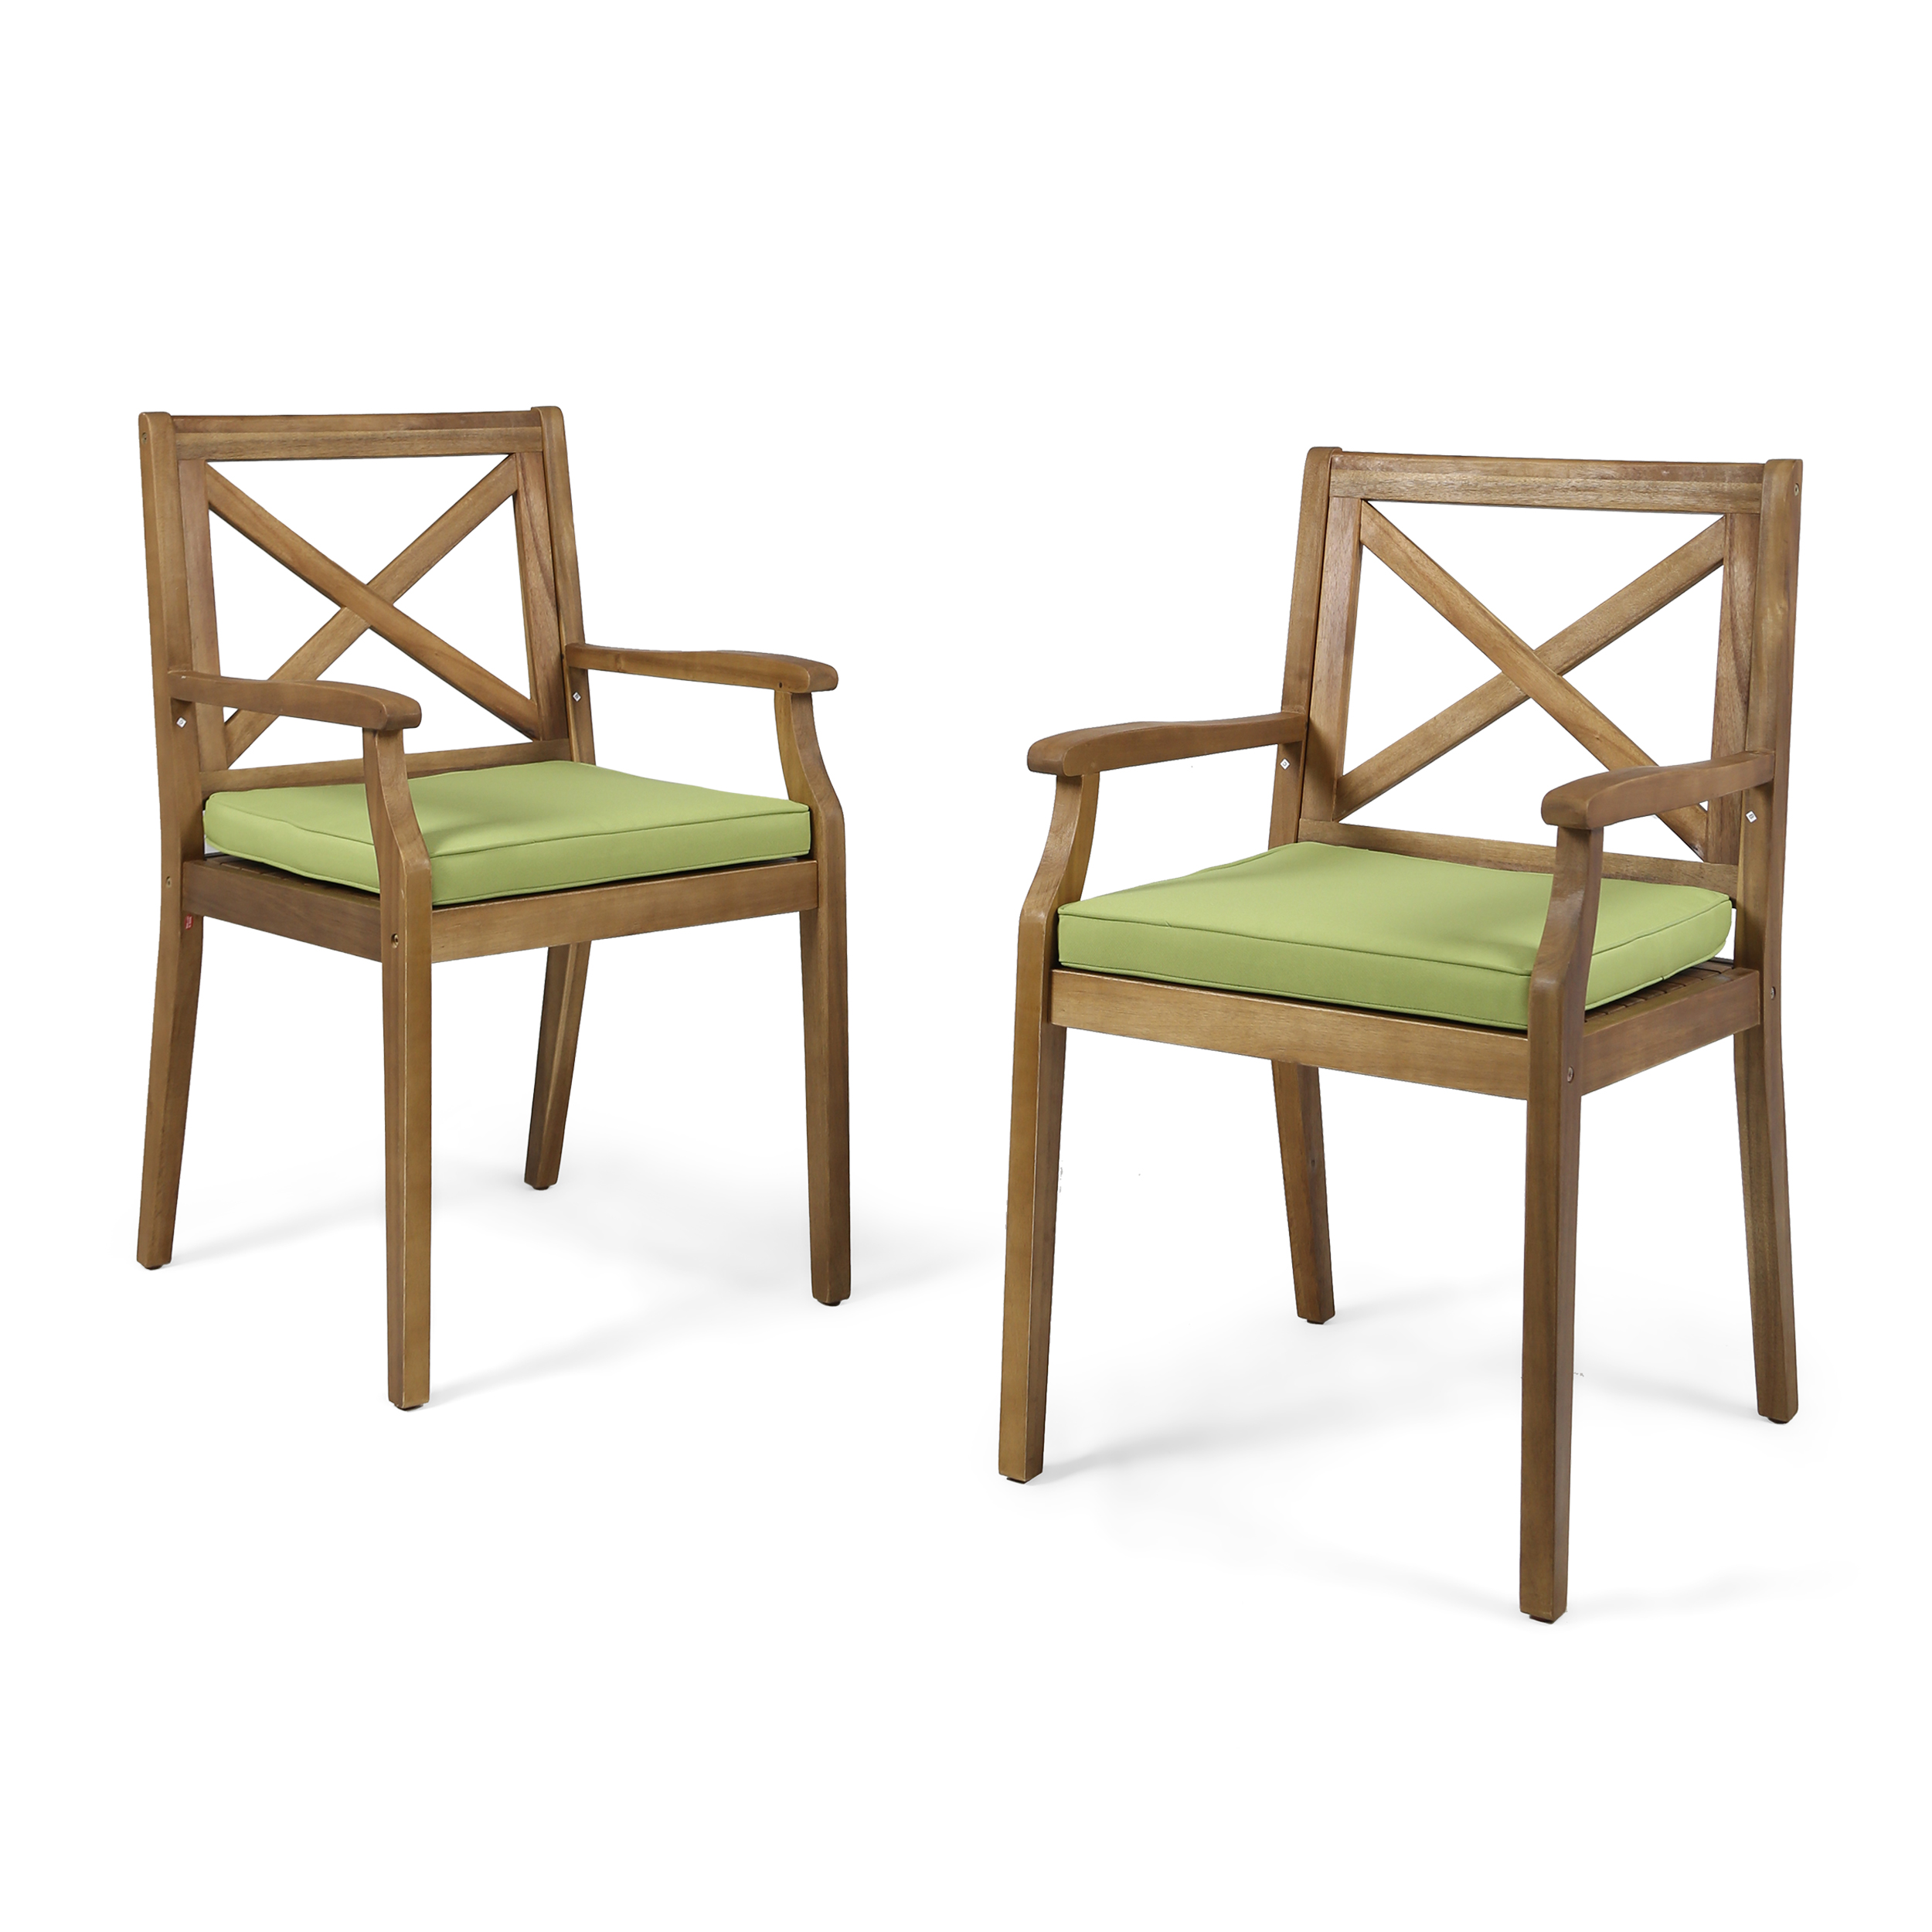 Peter Outdoor Acacia Wood Dining Chair, Set of 2, Teak with Green Cushions